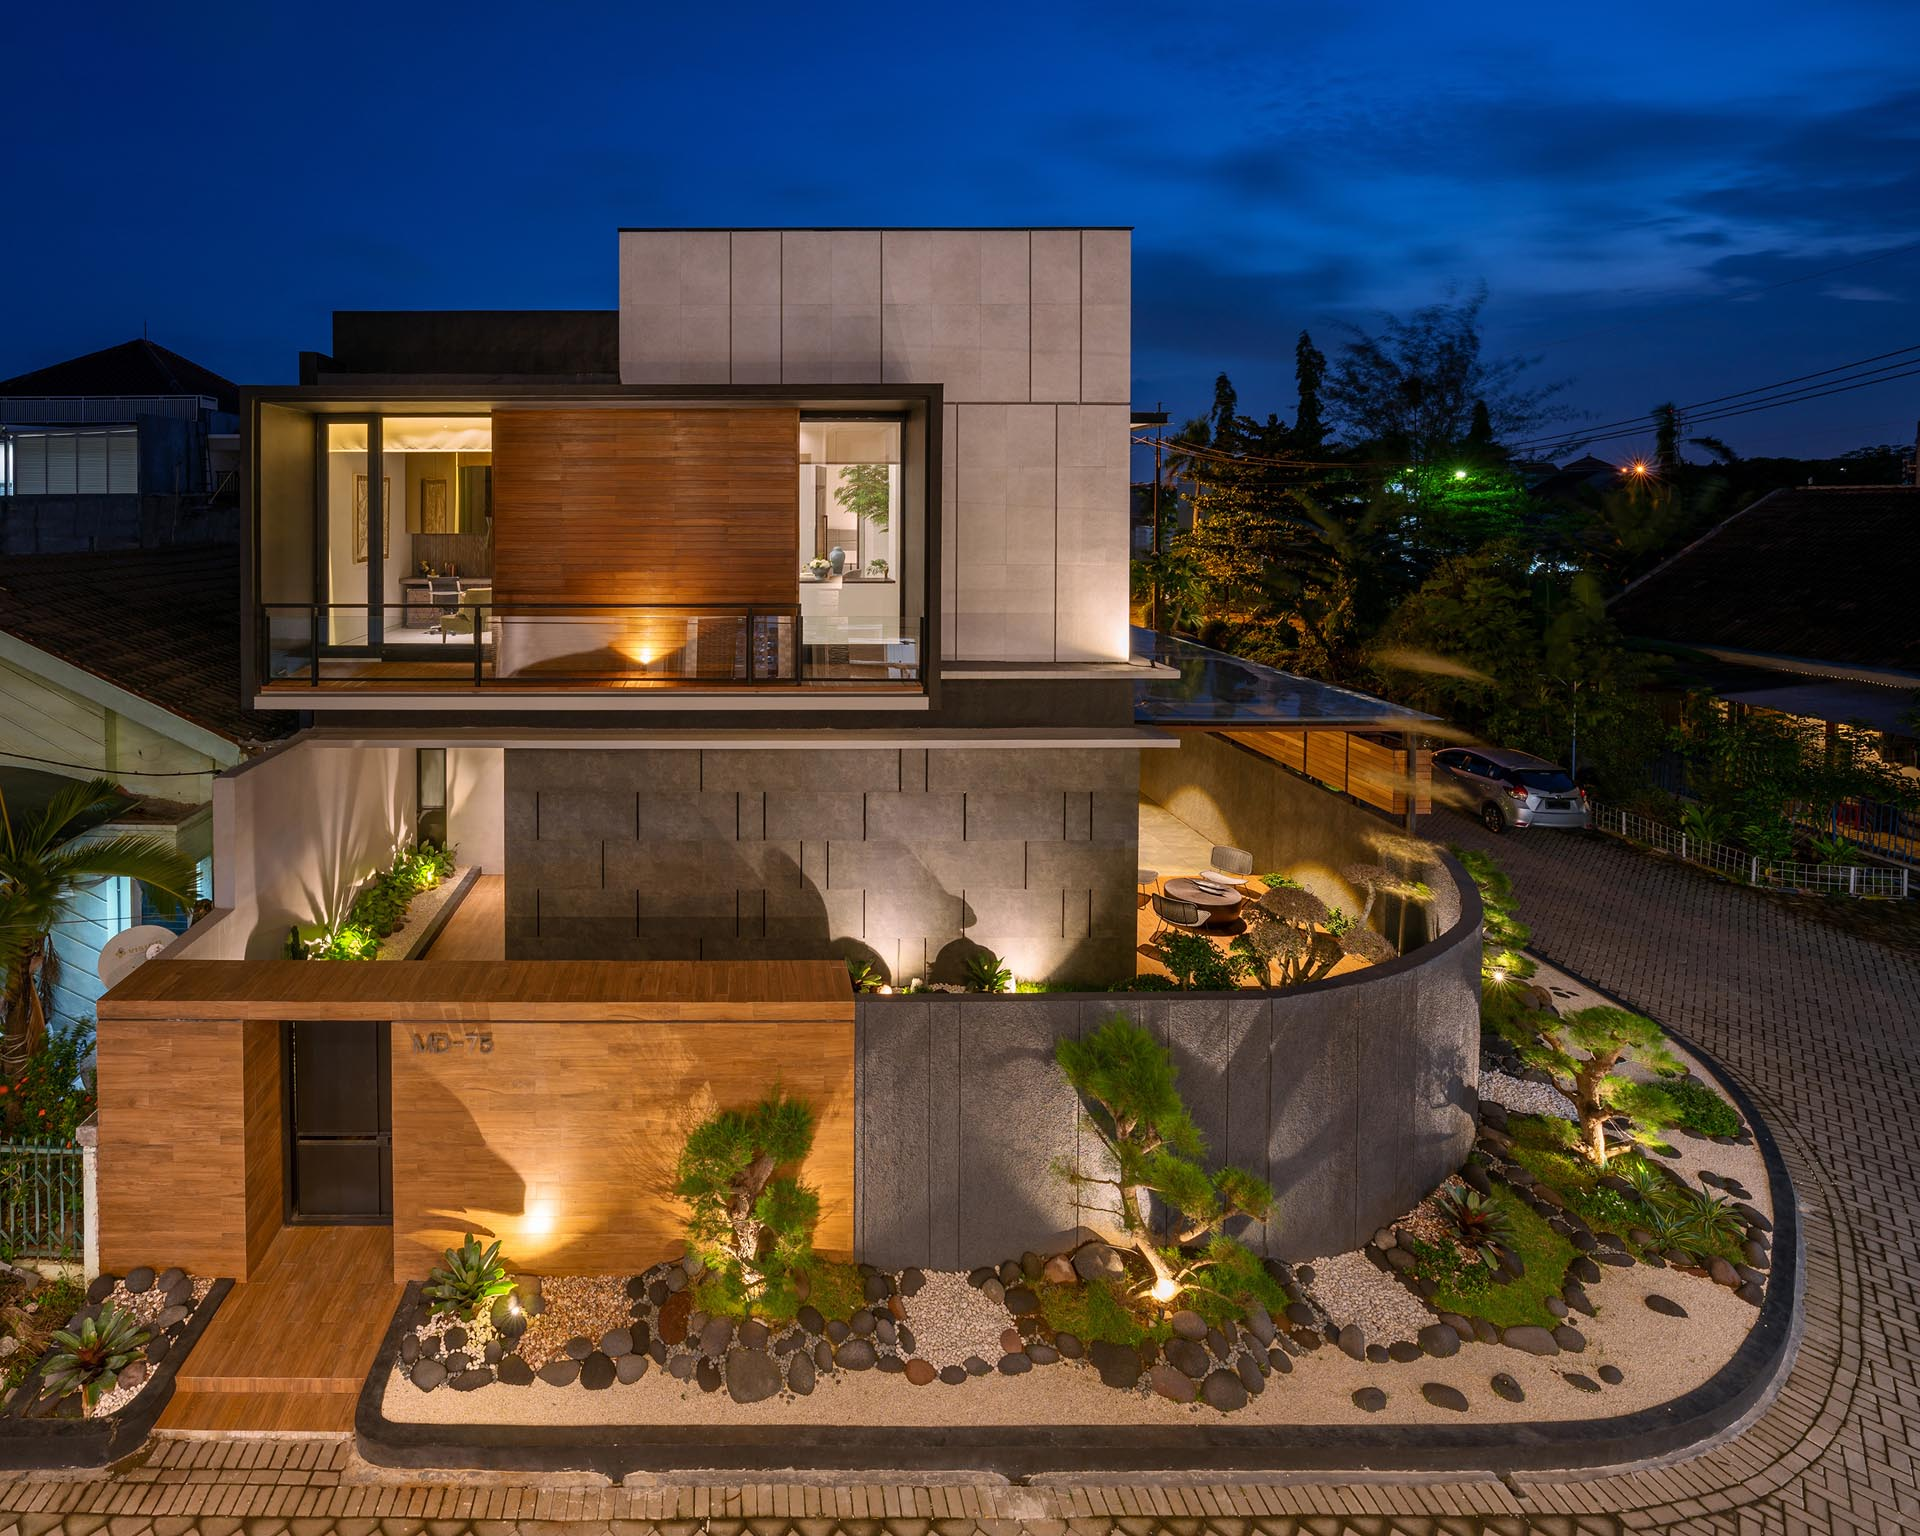 This Zen garden creates modern  curb appeal for a corner lot, and has a dark matte black and wood fence as a backdrop. It also includes ornamental trees, white pebbles, gray stones, and small sections of grass.